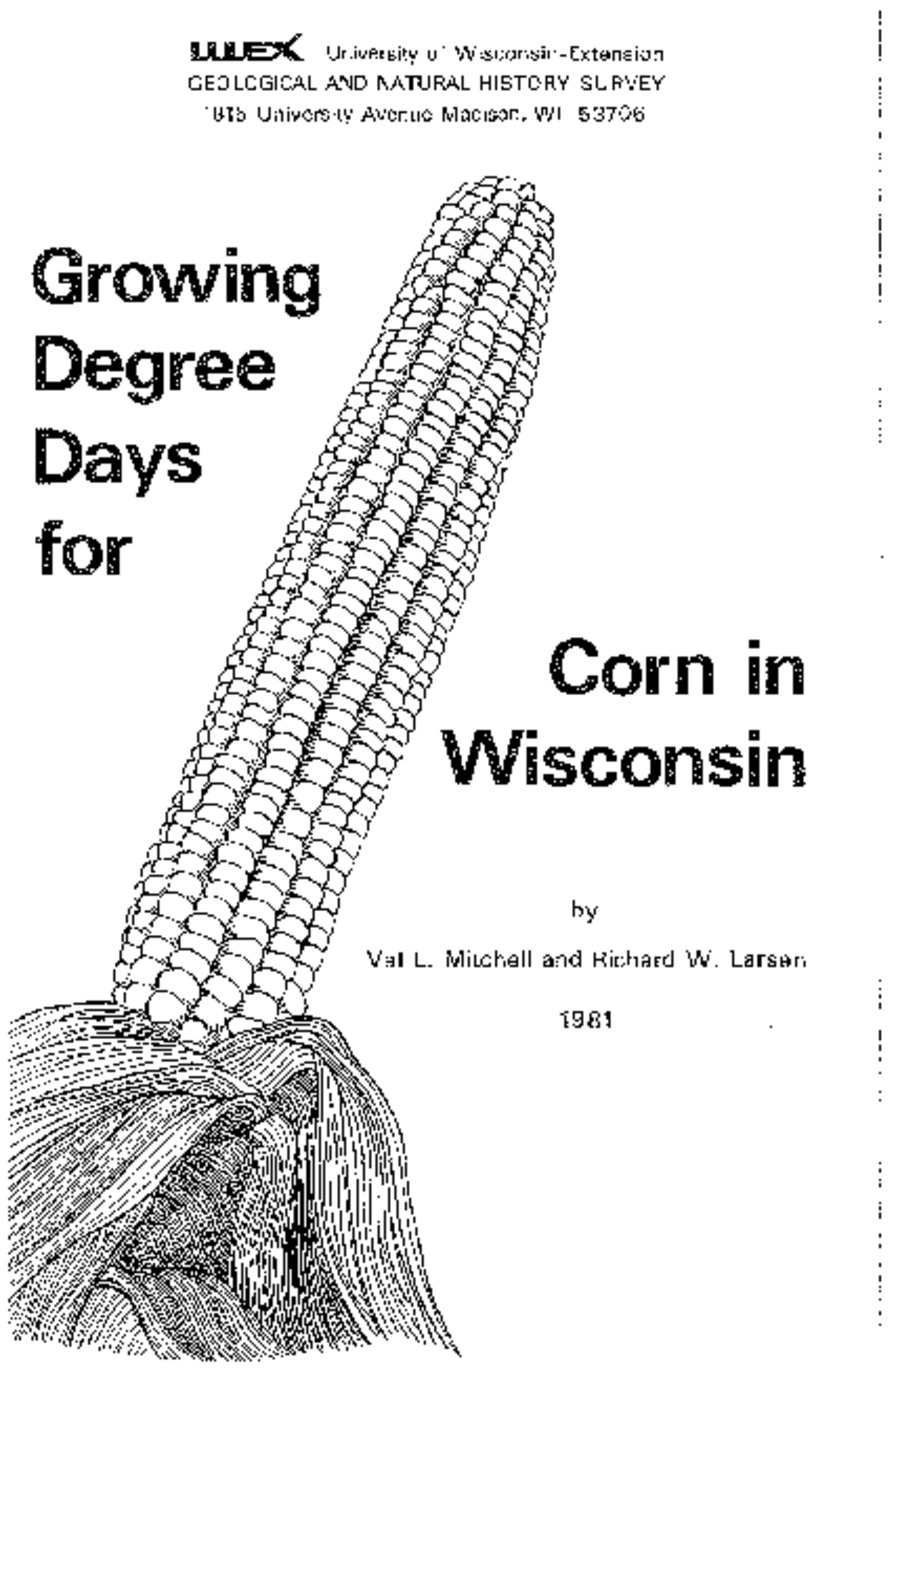 Wisconsin Geological & Natural History Survey » Growing